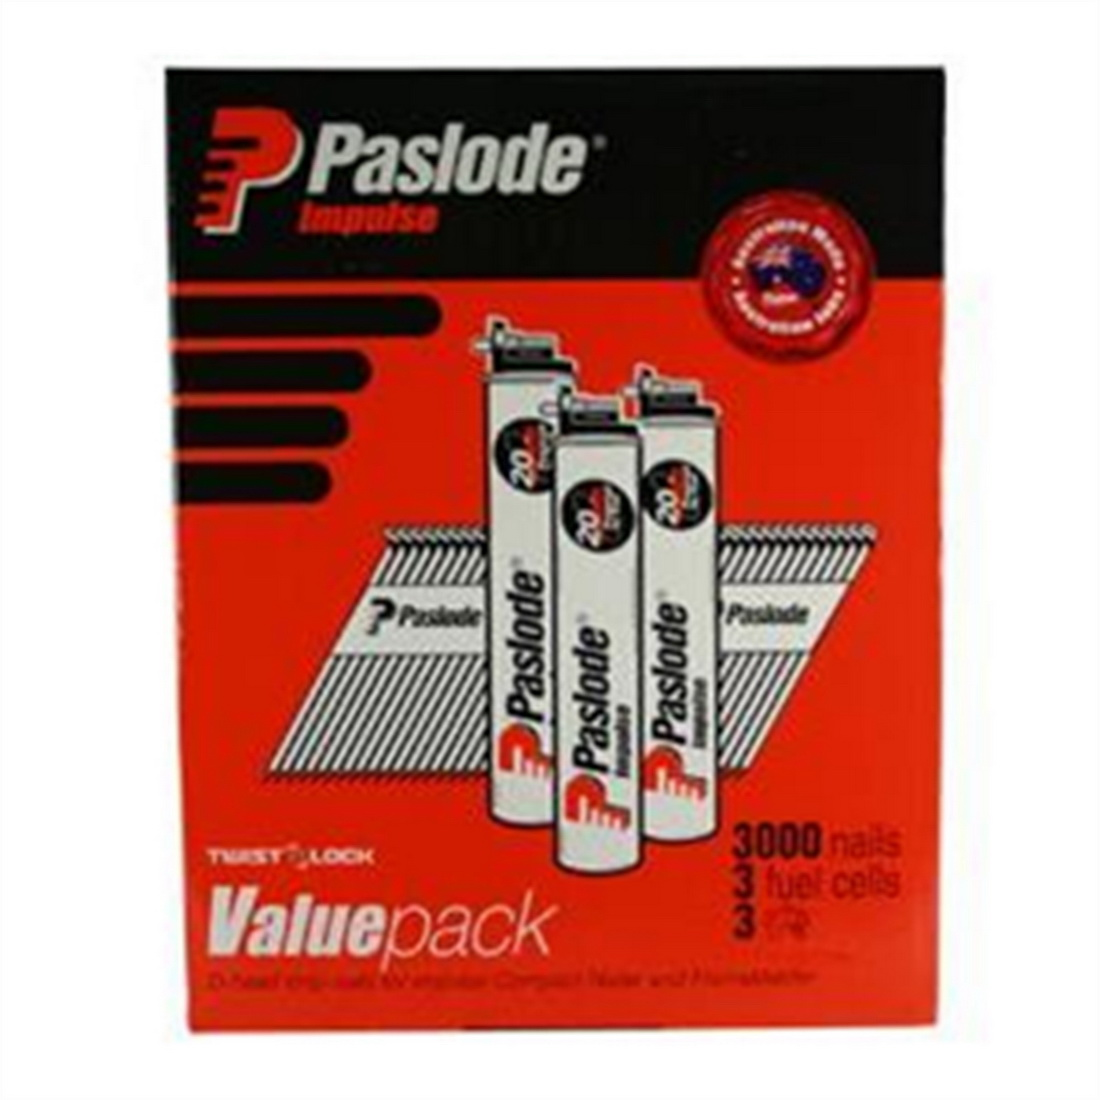 D Head Impulse Nail and 3 Fuel Cell Value Pack 3.15 x 90mm Smooth Hot Dipped Galvanised 3000 pack